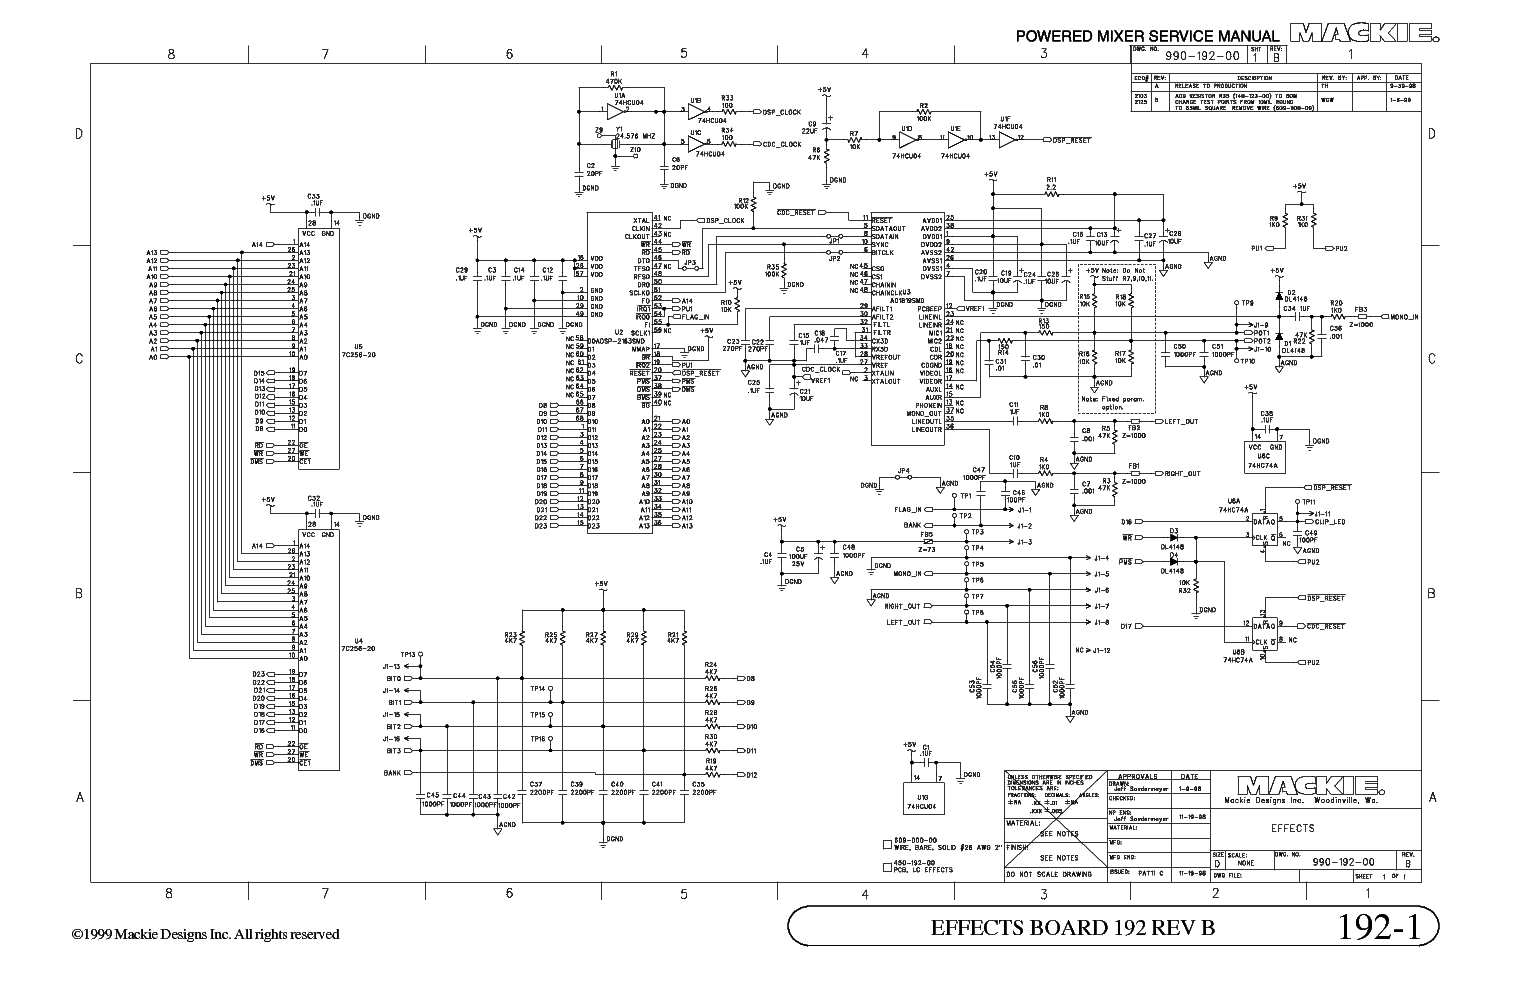 mackie 808s mixer sch service manual schematics eeprom repair info for electronics